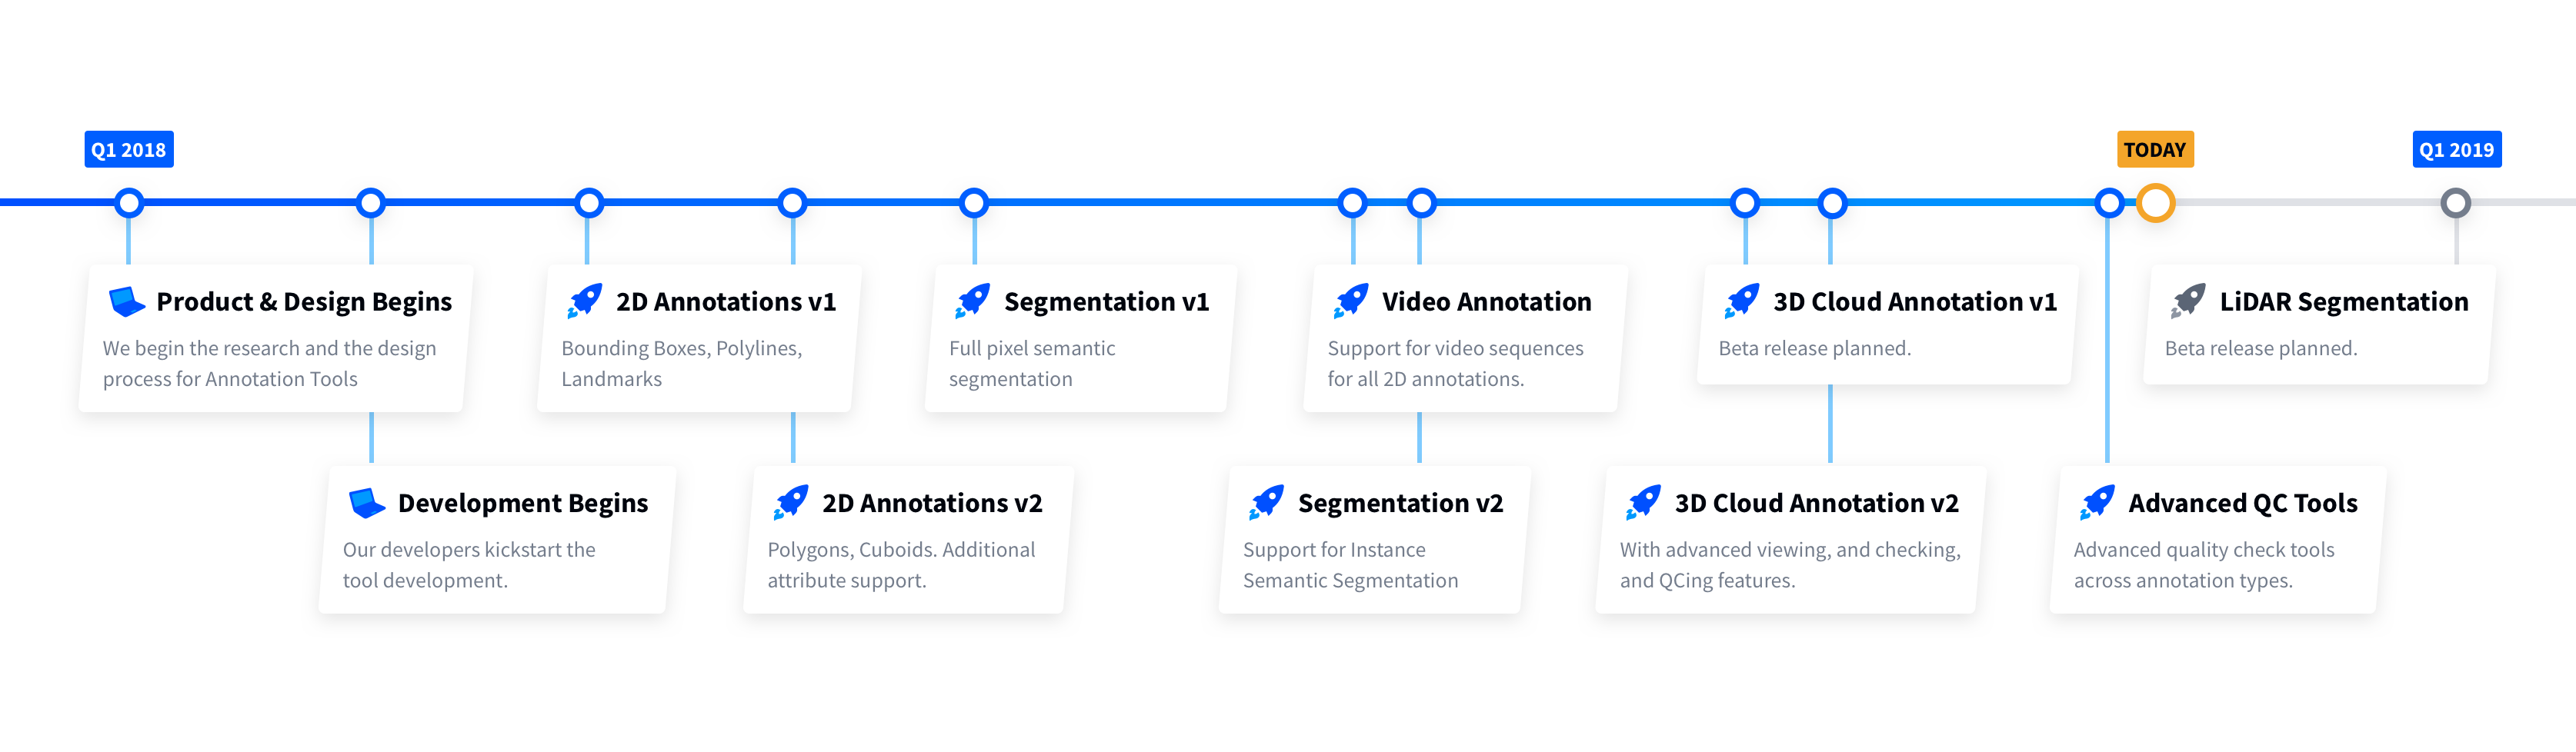 Suite of Annotation Tools for Computer Vision - The Startup - Medium